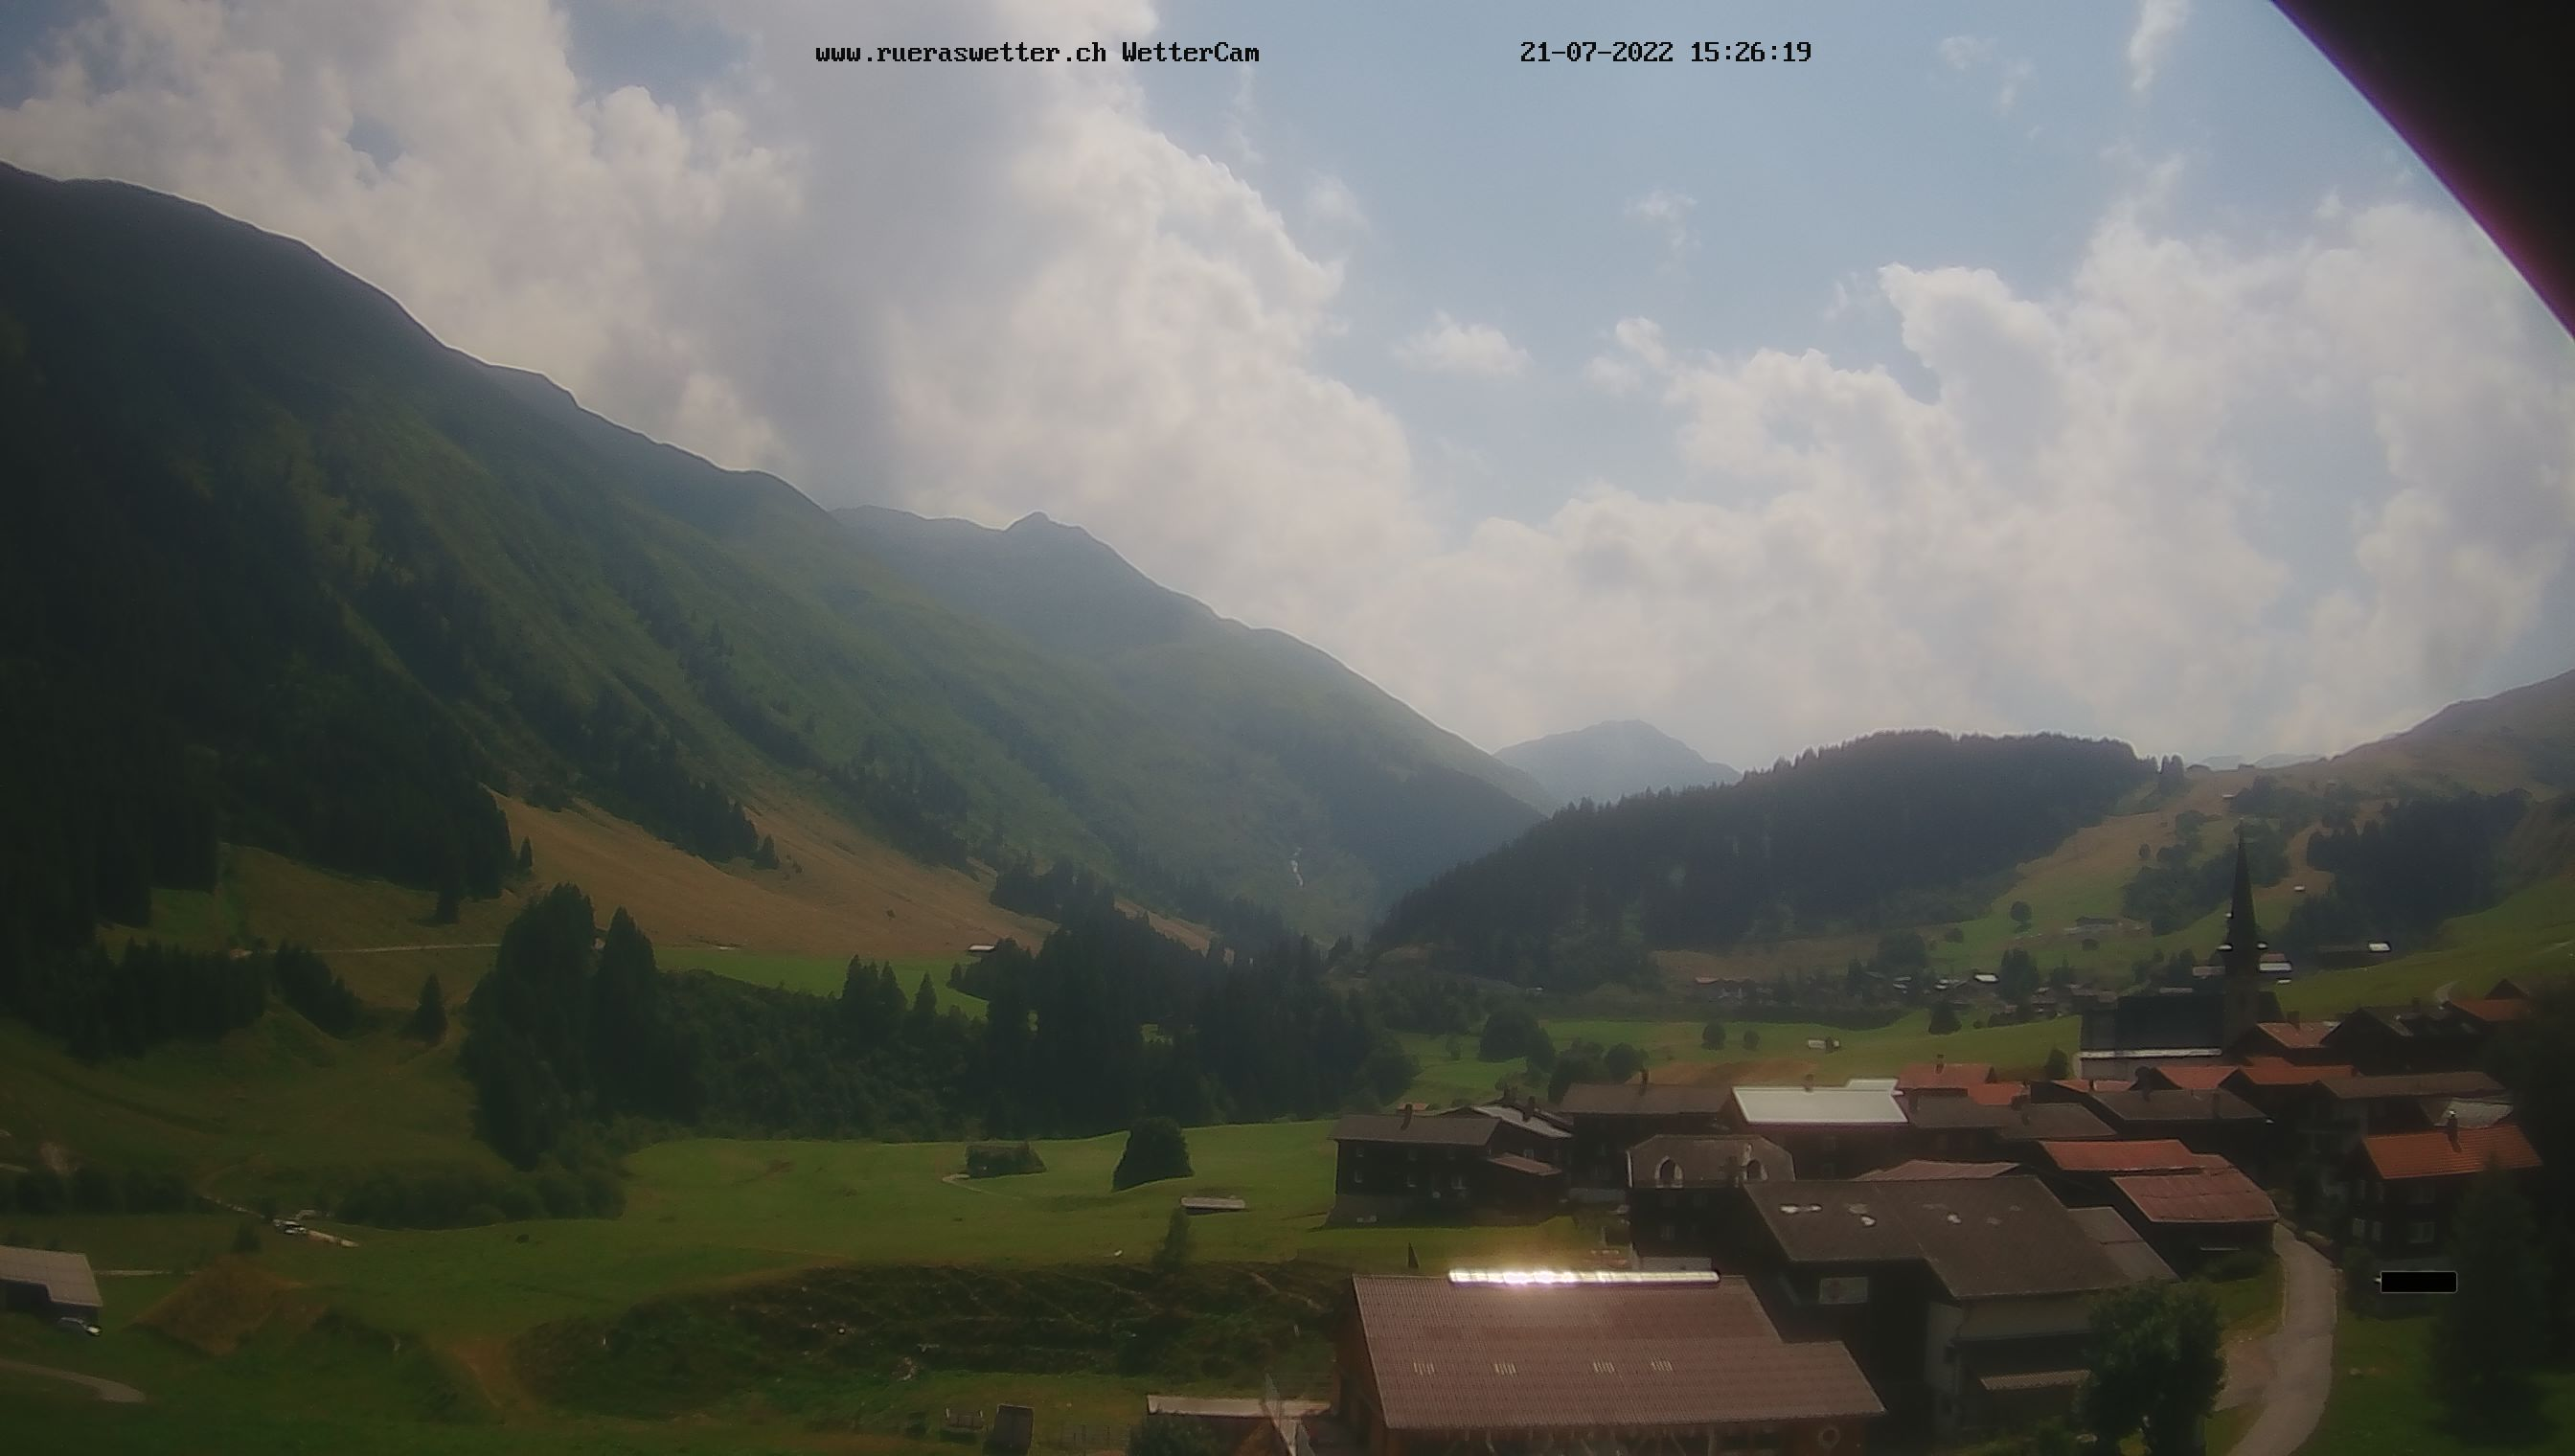 Webcams Rueras